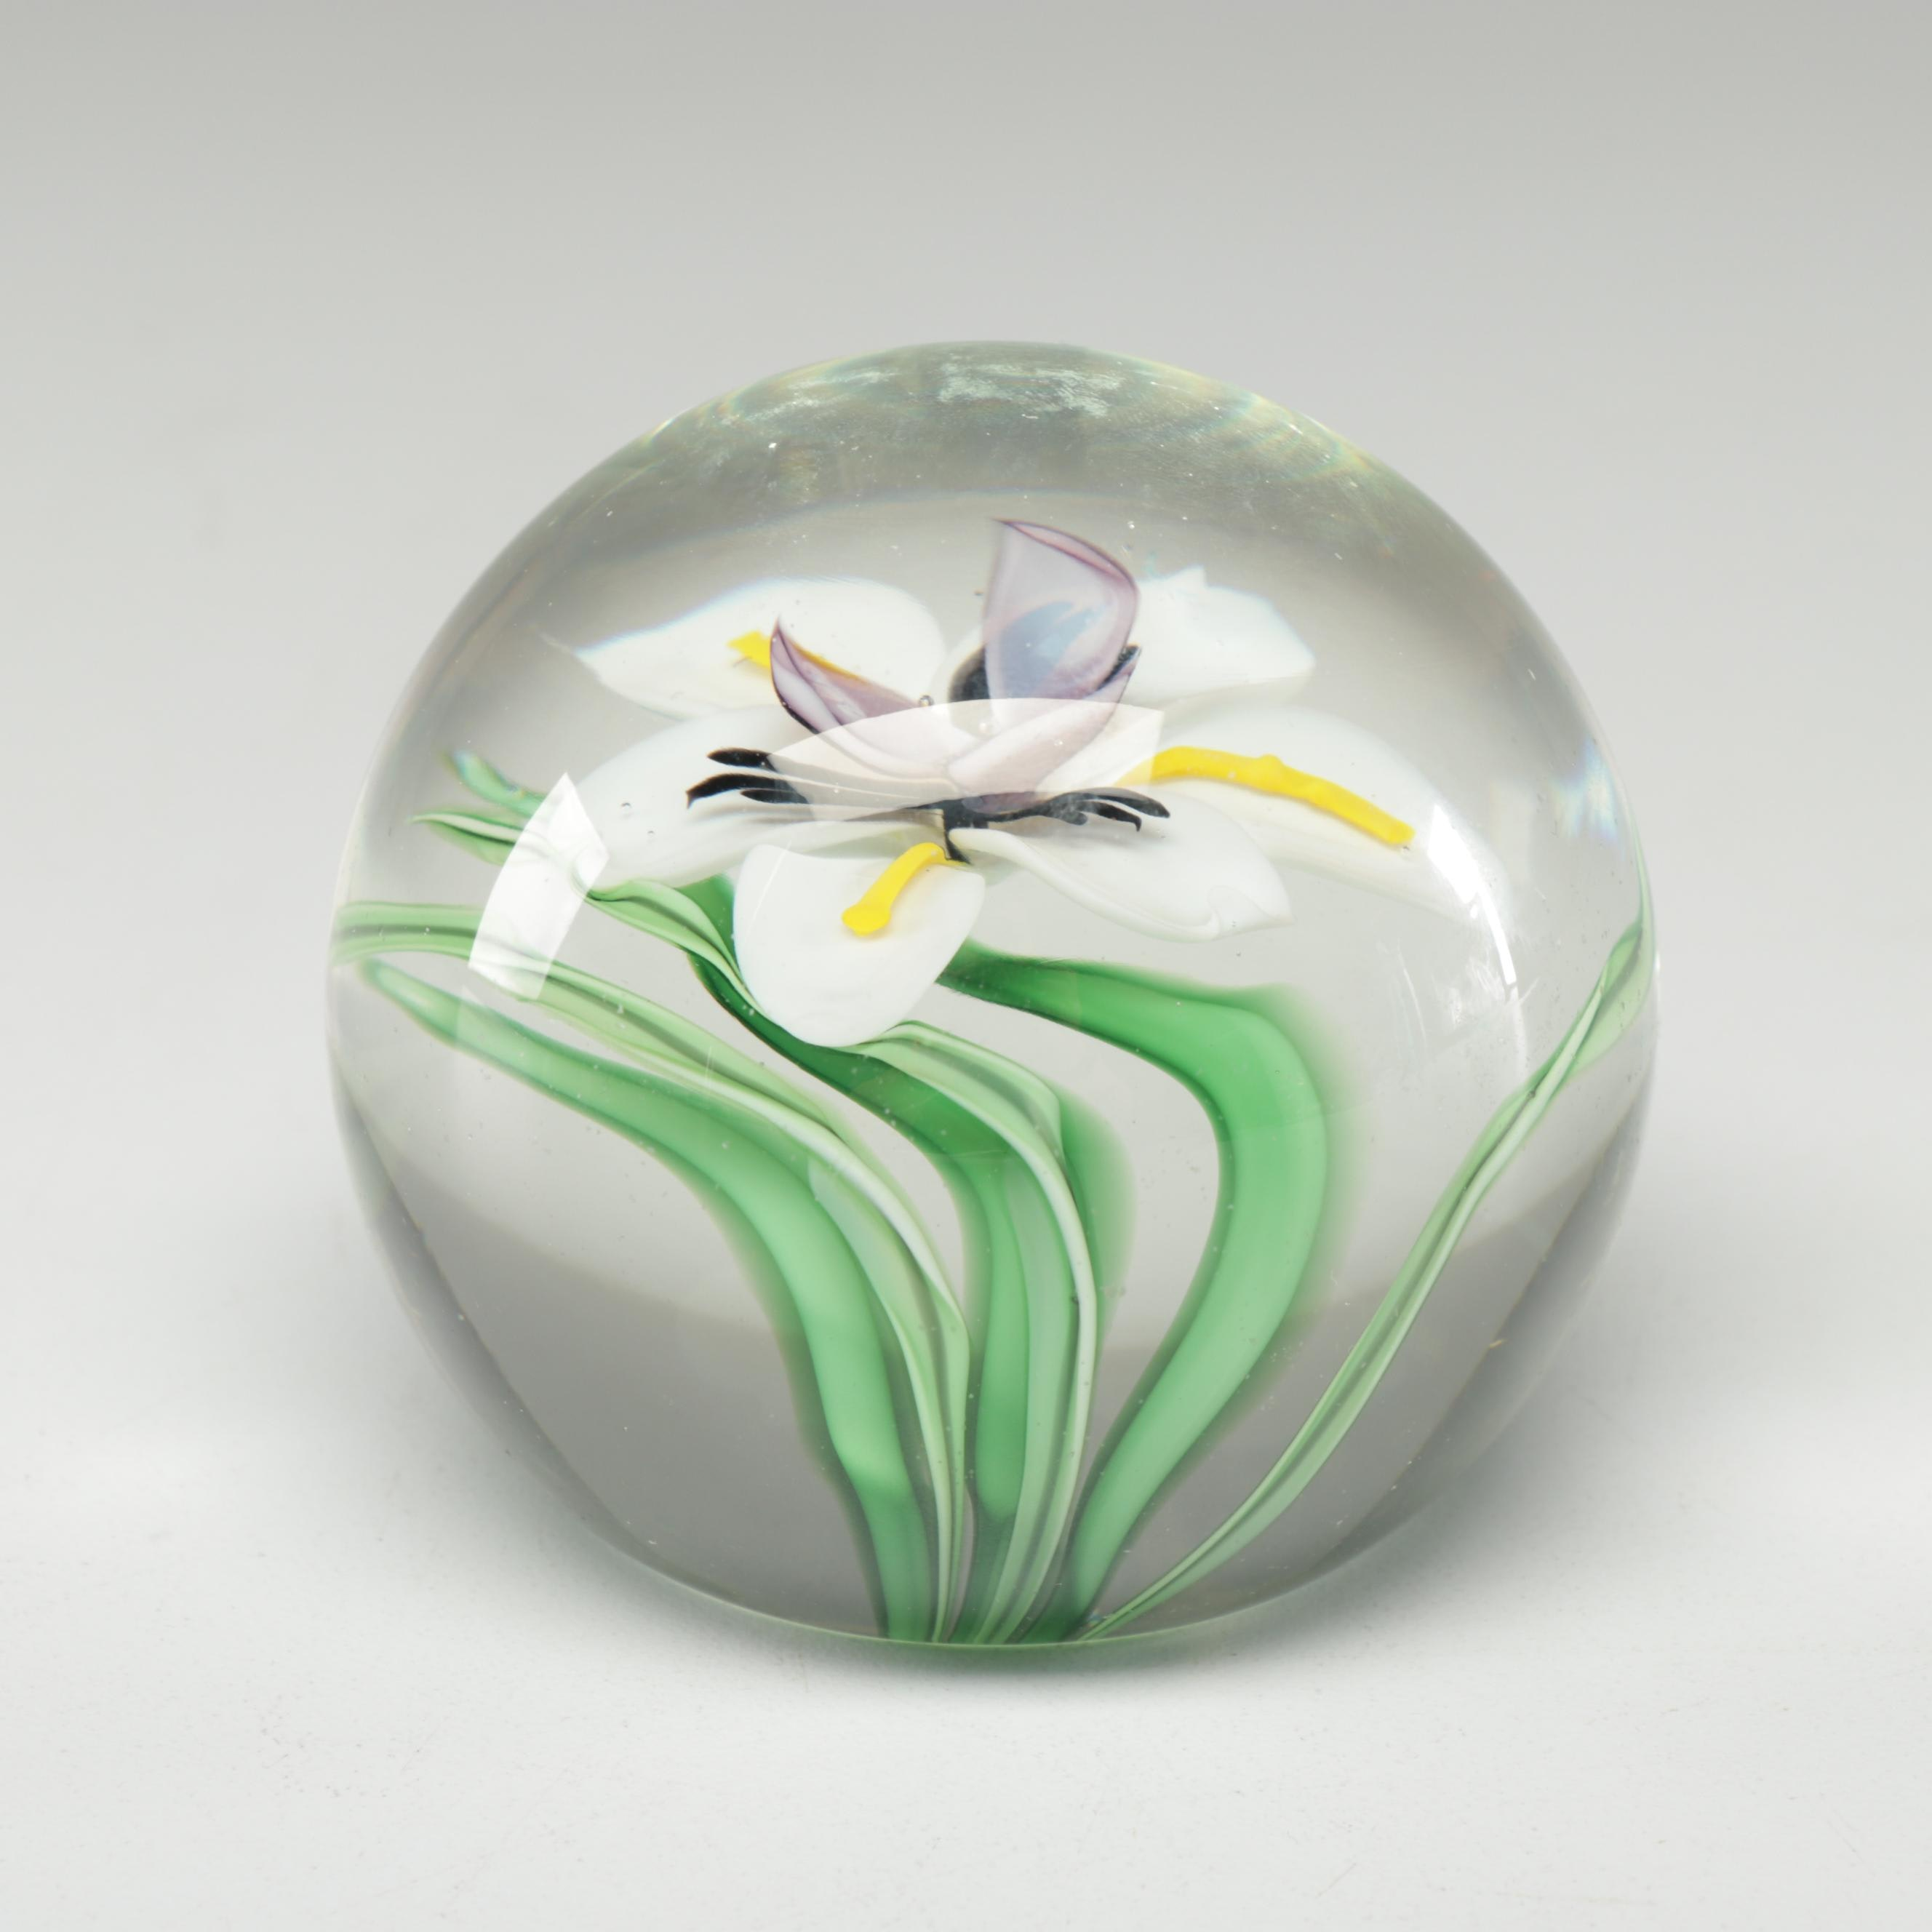 Orient & Flume Floral Art Glass Paperweight by M. Quinn, 1985